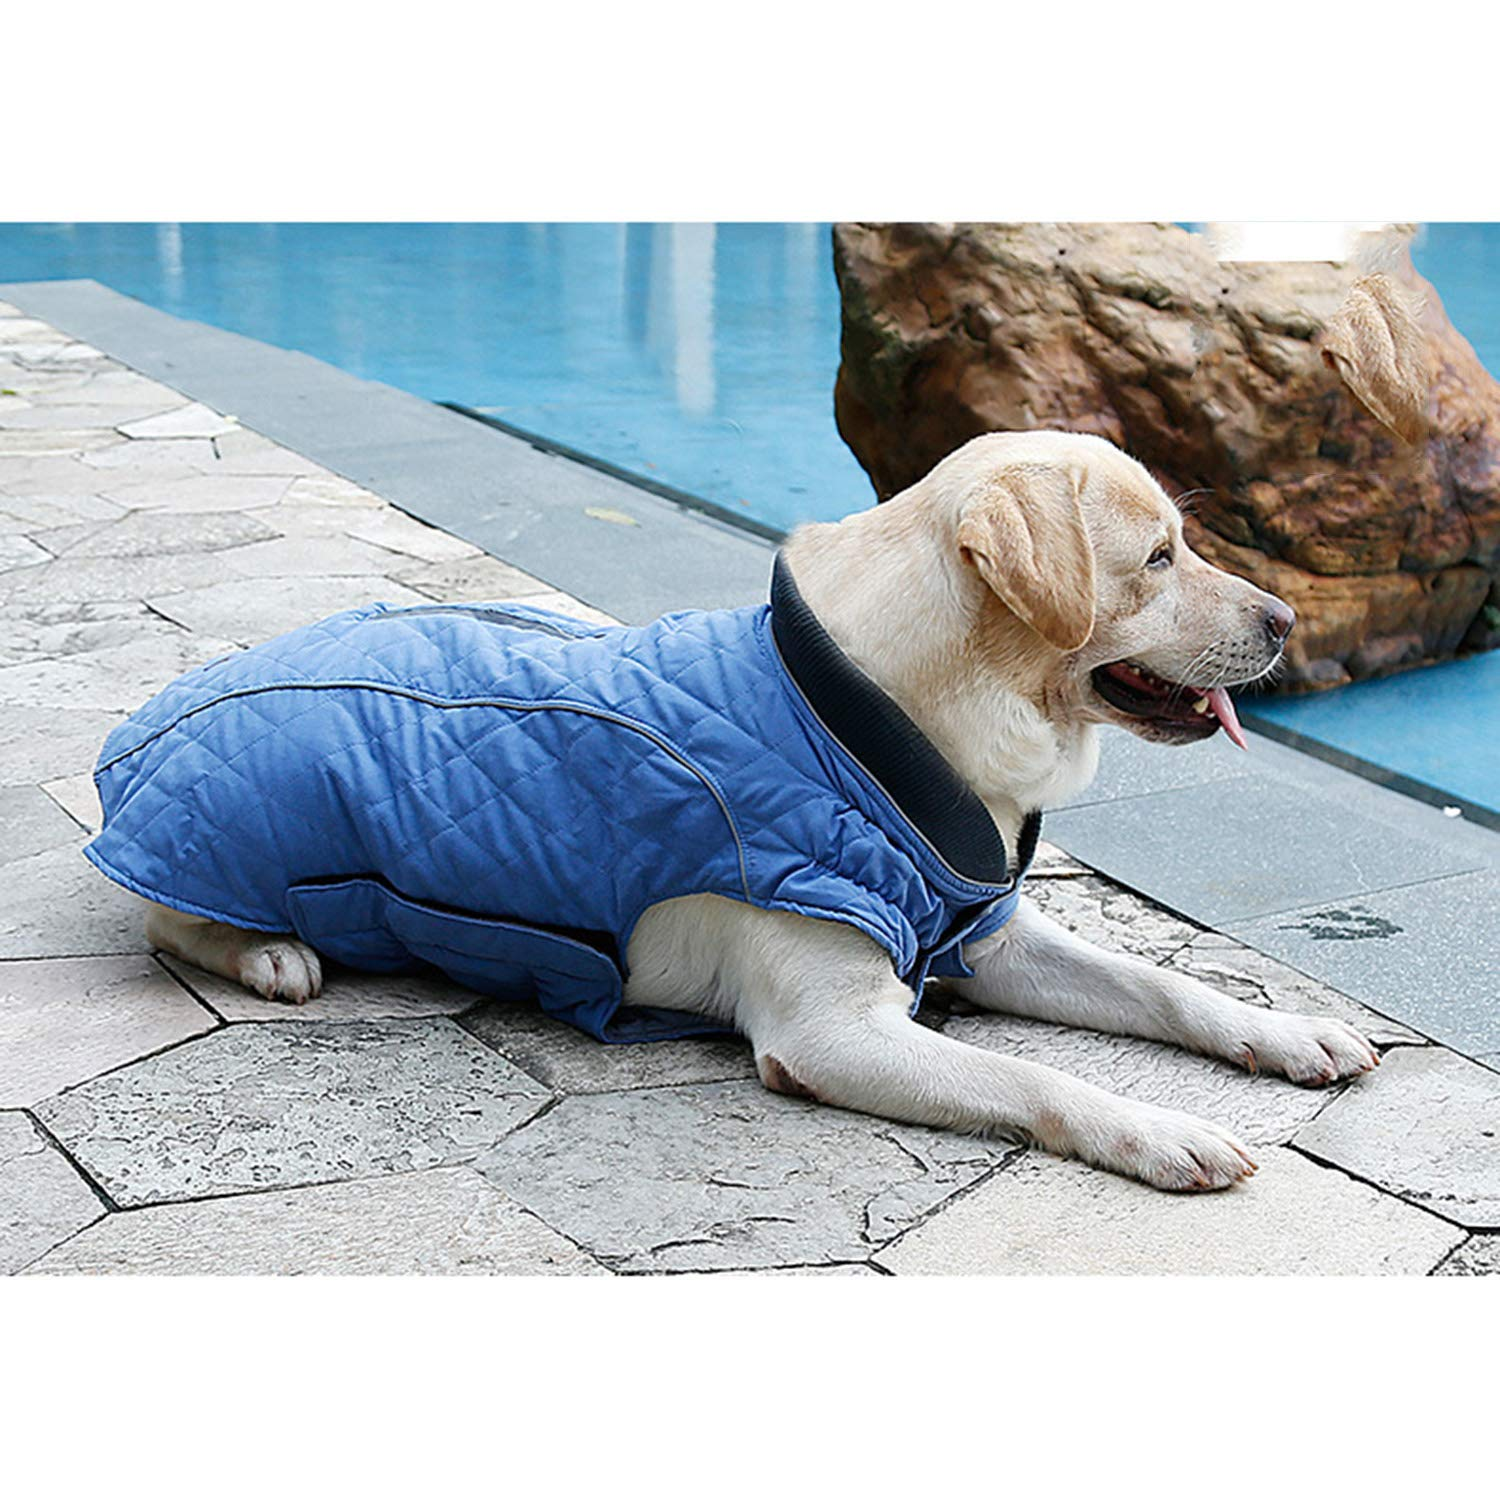 bluee XXL bluee XXL Dog Outdoor Warm Clothing Retro Style Warm Pet Clothes Autumn and Winter Pet Jacket Pet Supplies Pet Clothing